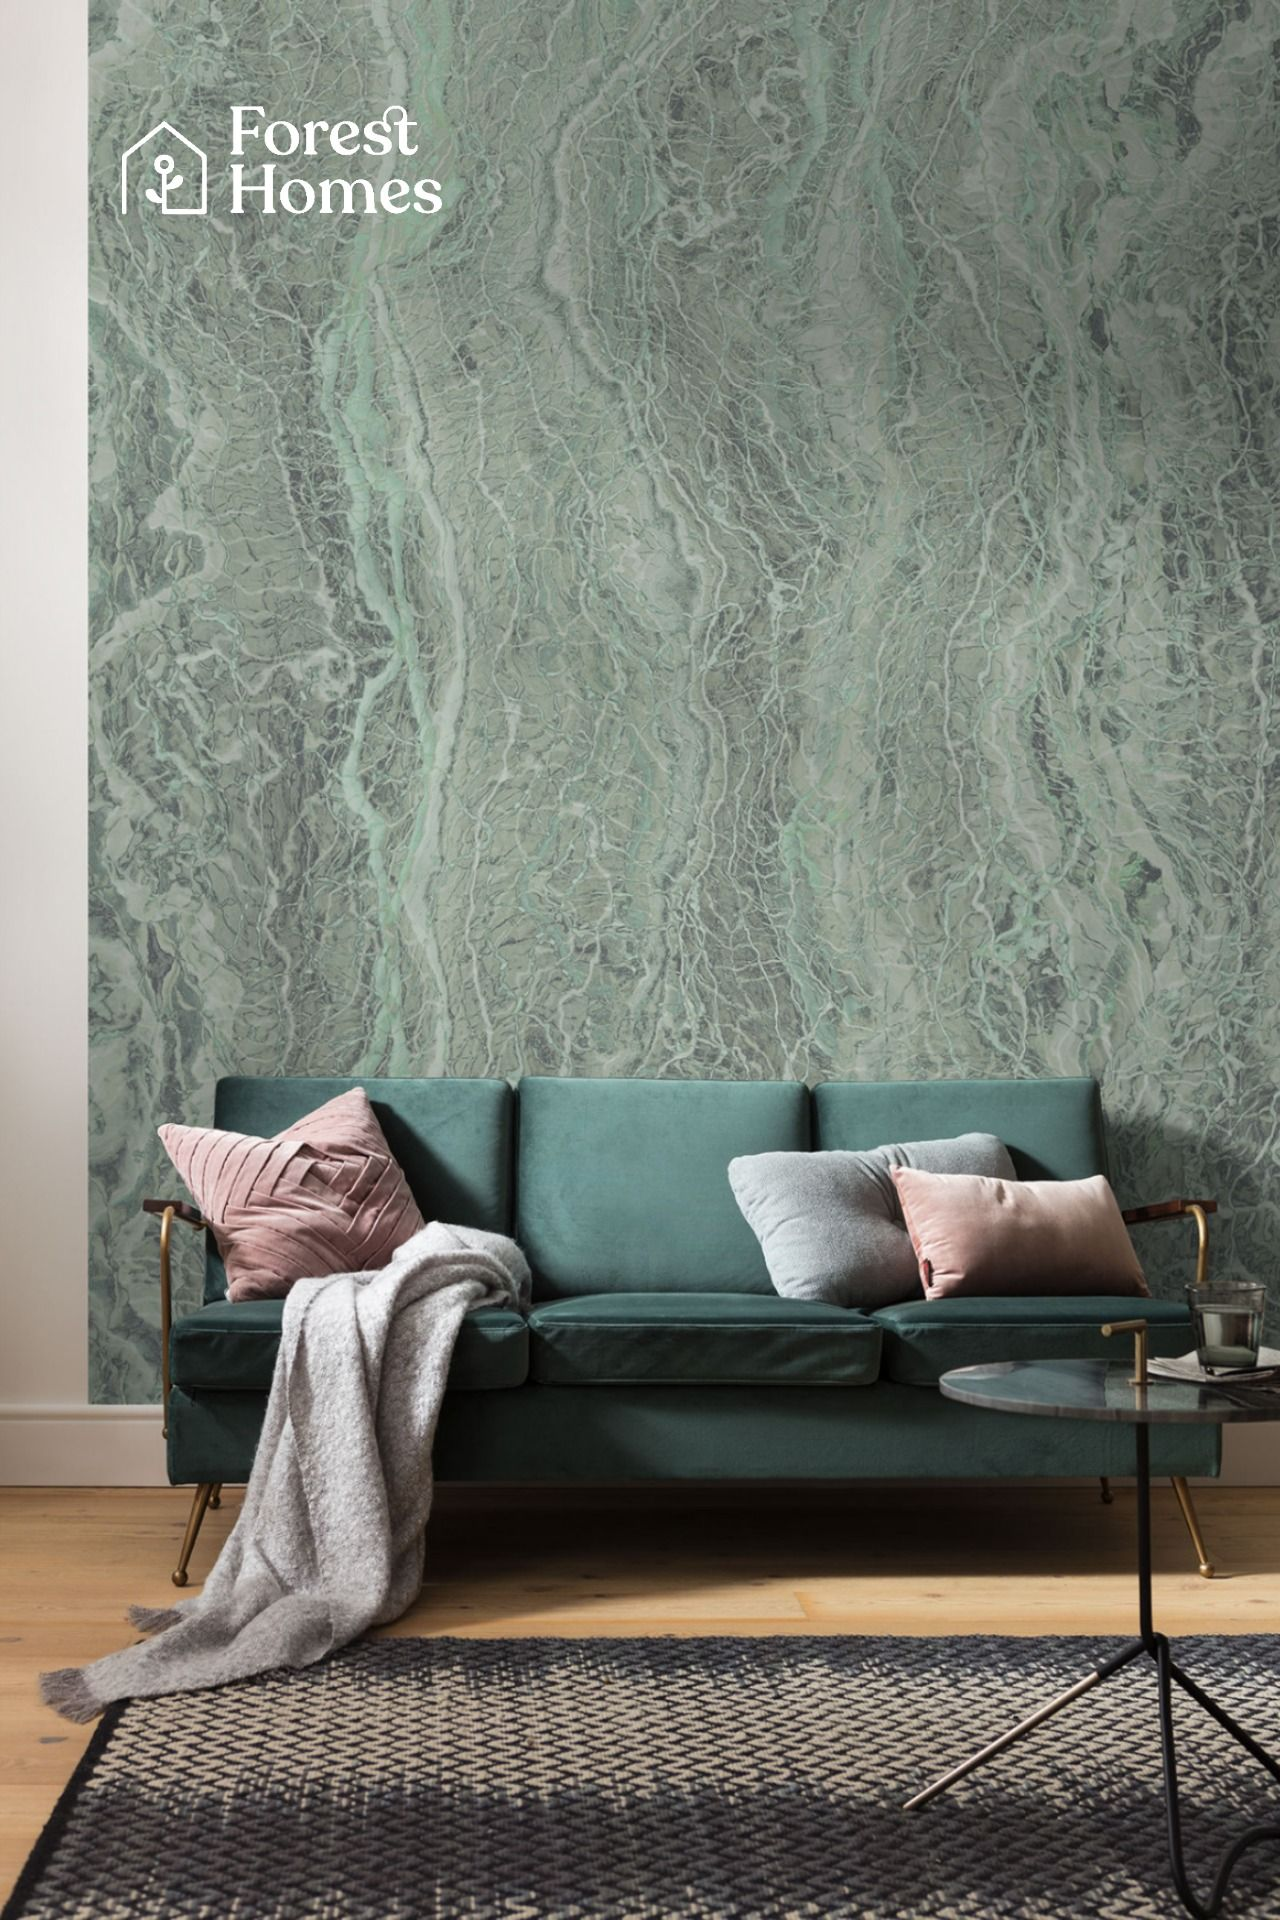 Choose And Customise Your Favourite Mural Among The Most Gorg